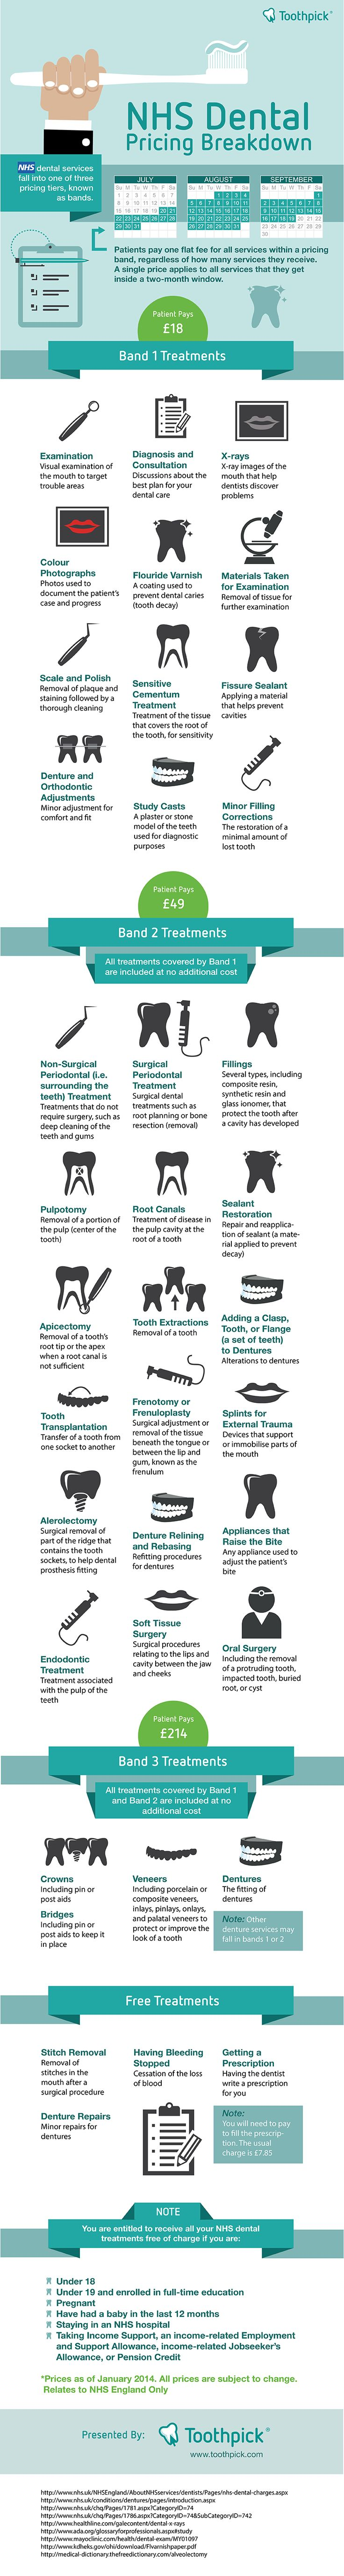 NHS Dental Pricing Bands Explained Did You Know This